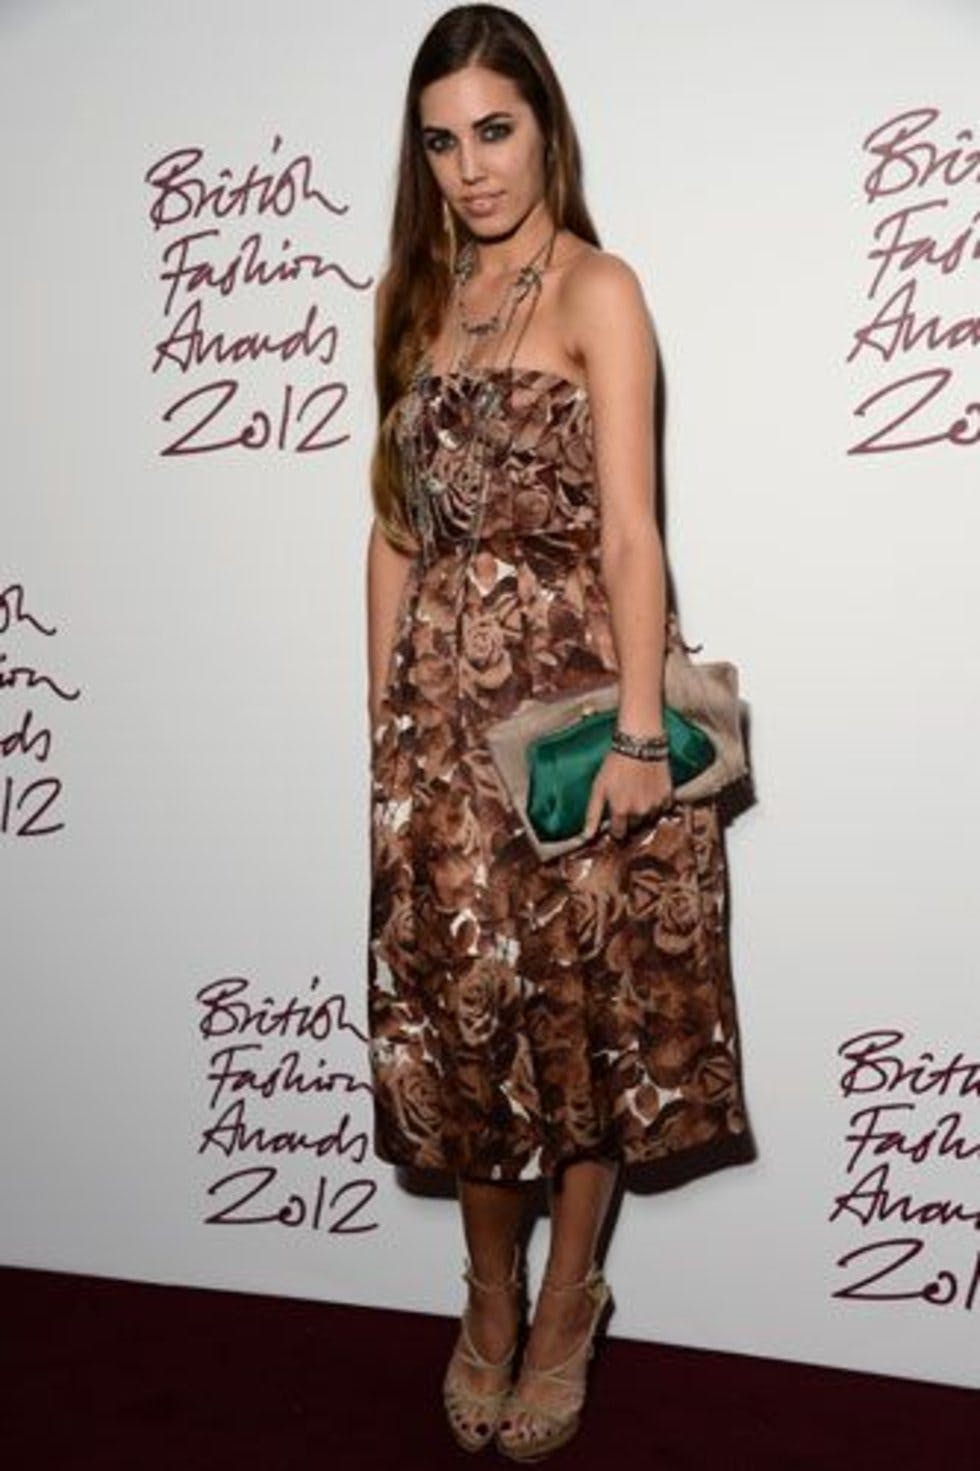 Amber Le Bon Nude british fashion awards 2012: red carpet arrivals